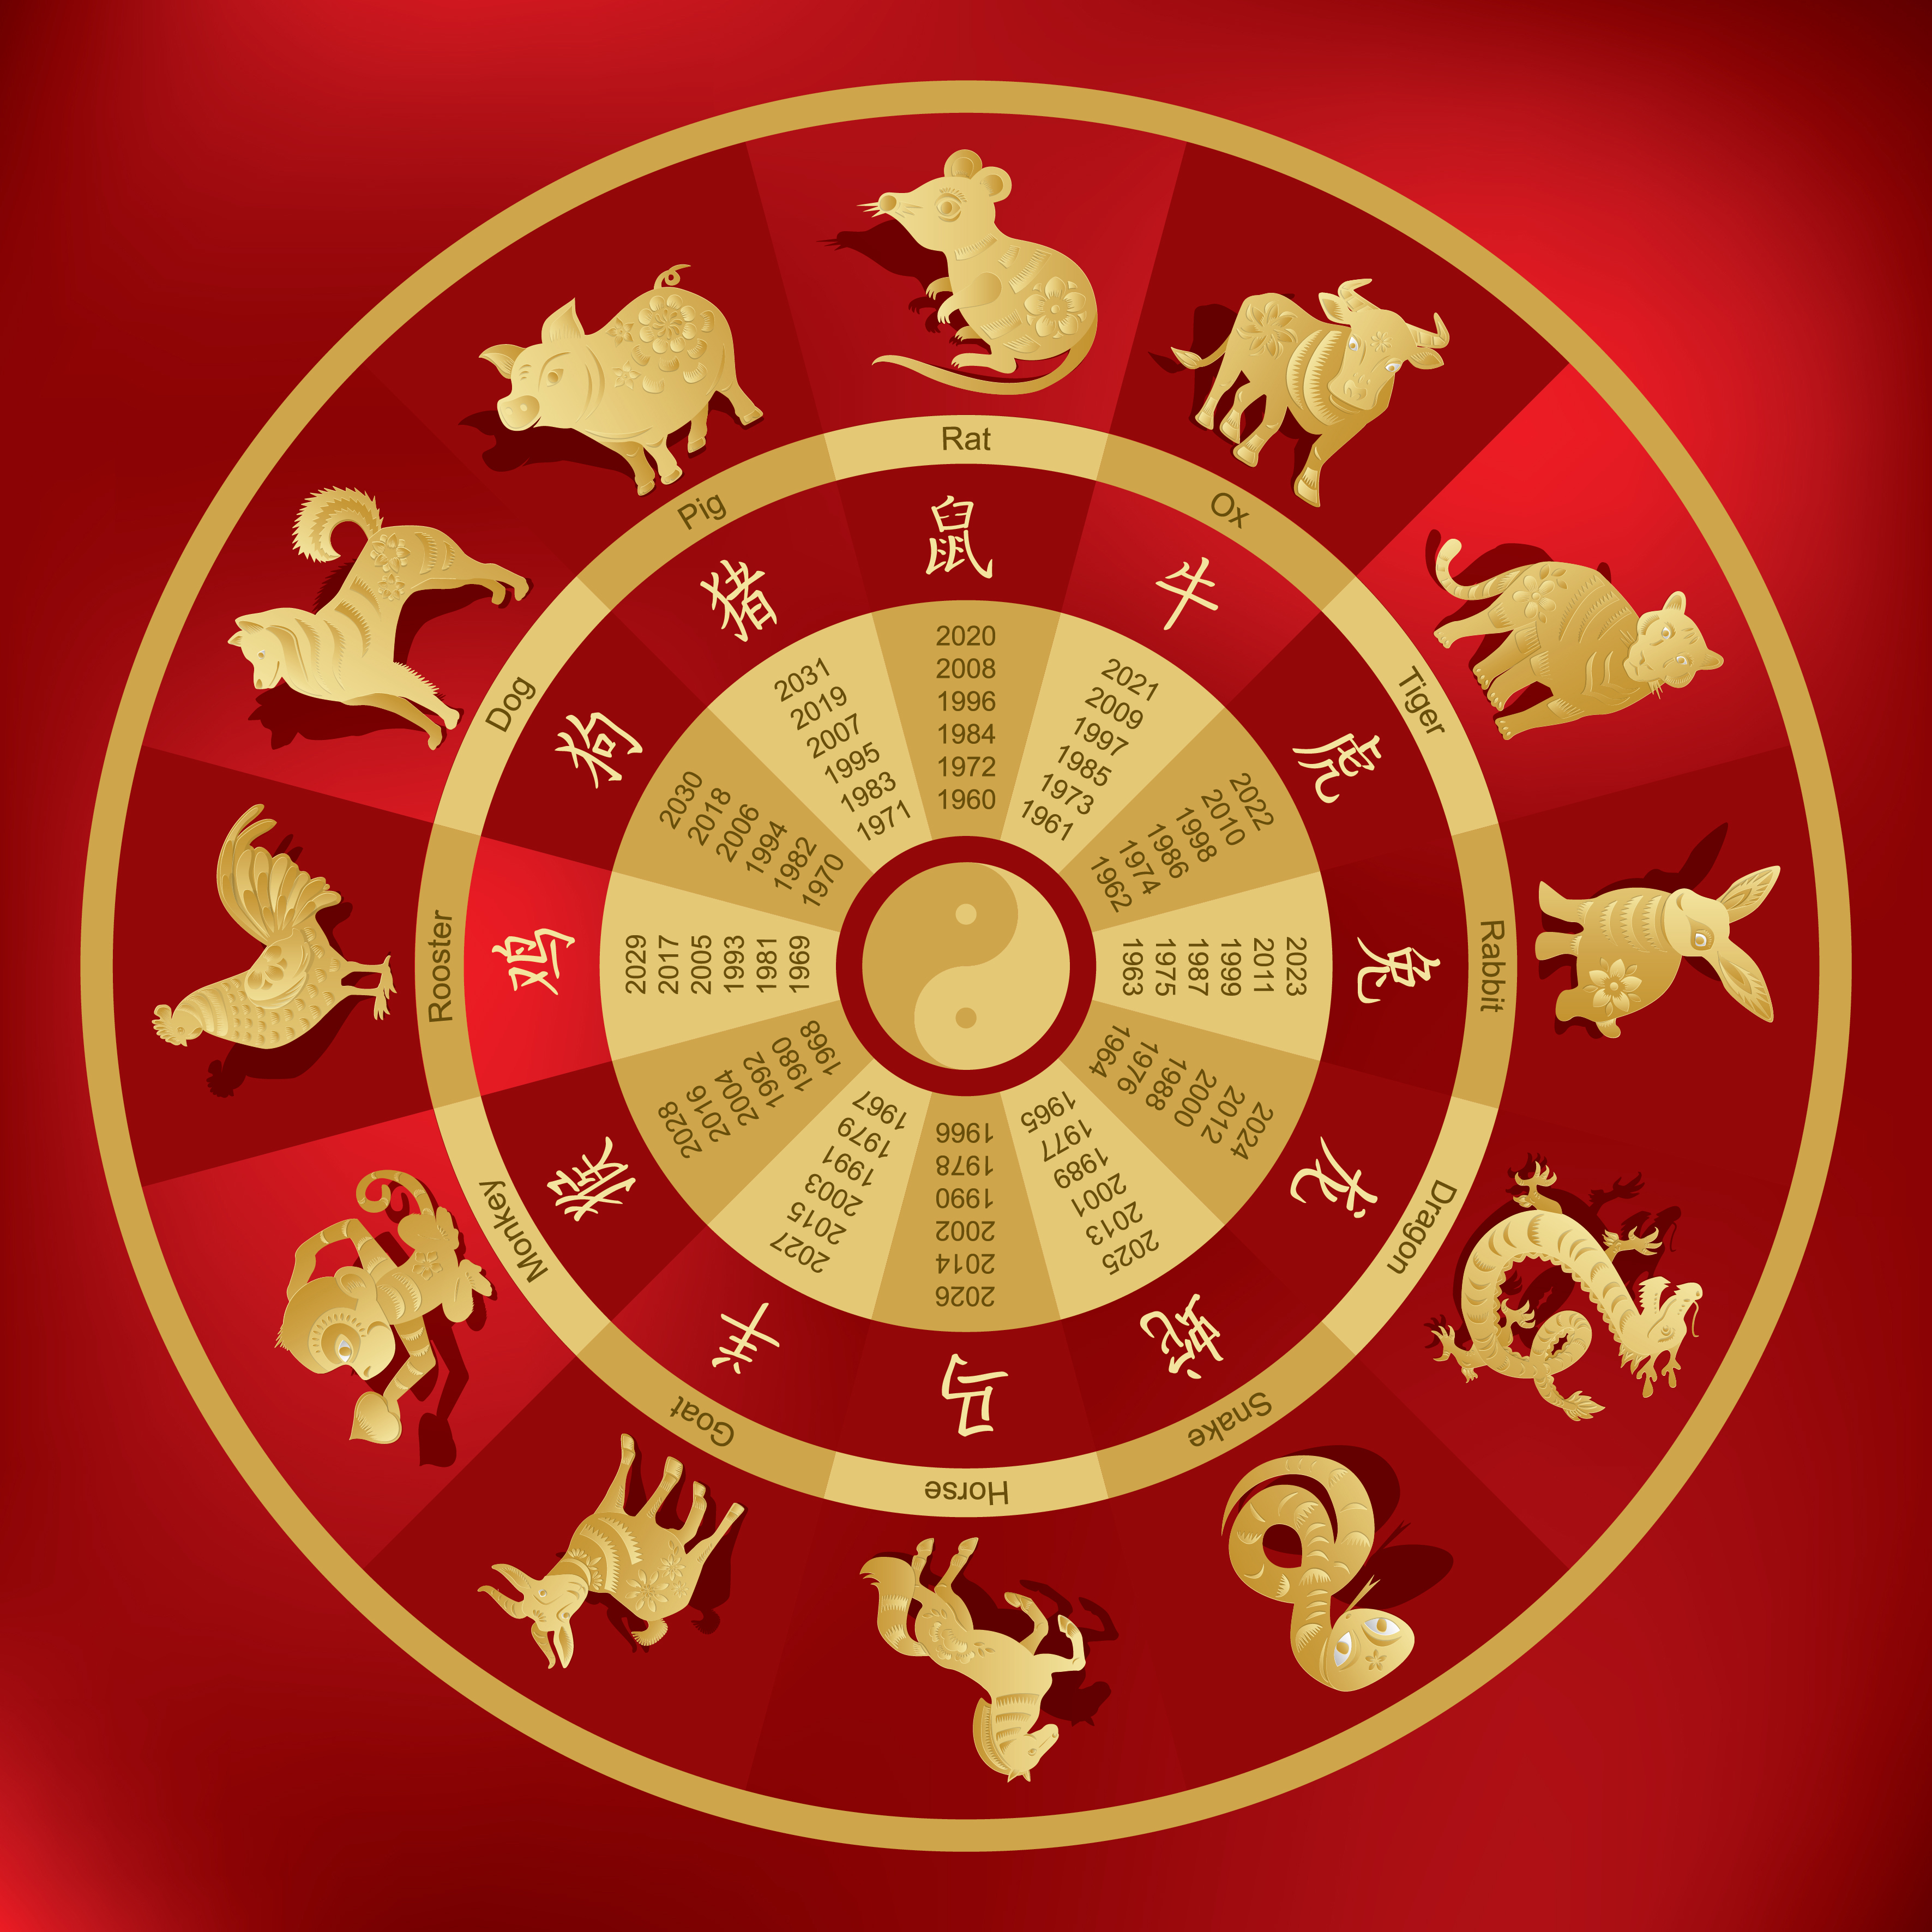 Chinese Zodiac Signs Can Tell a Lot About Your Personality